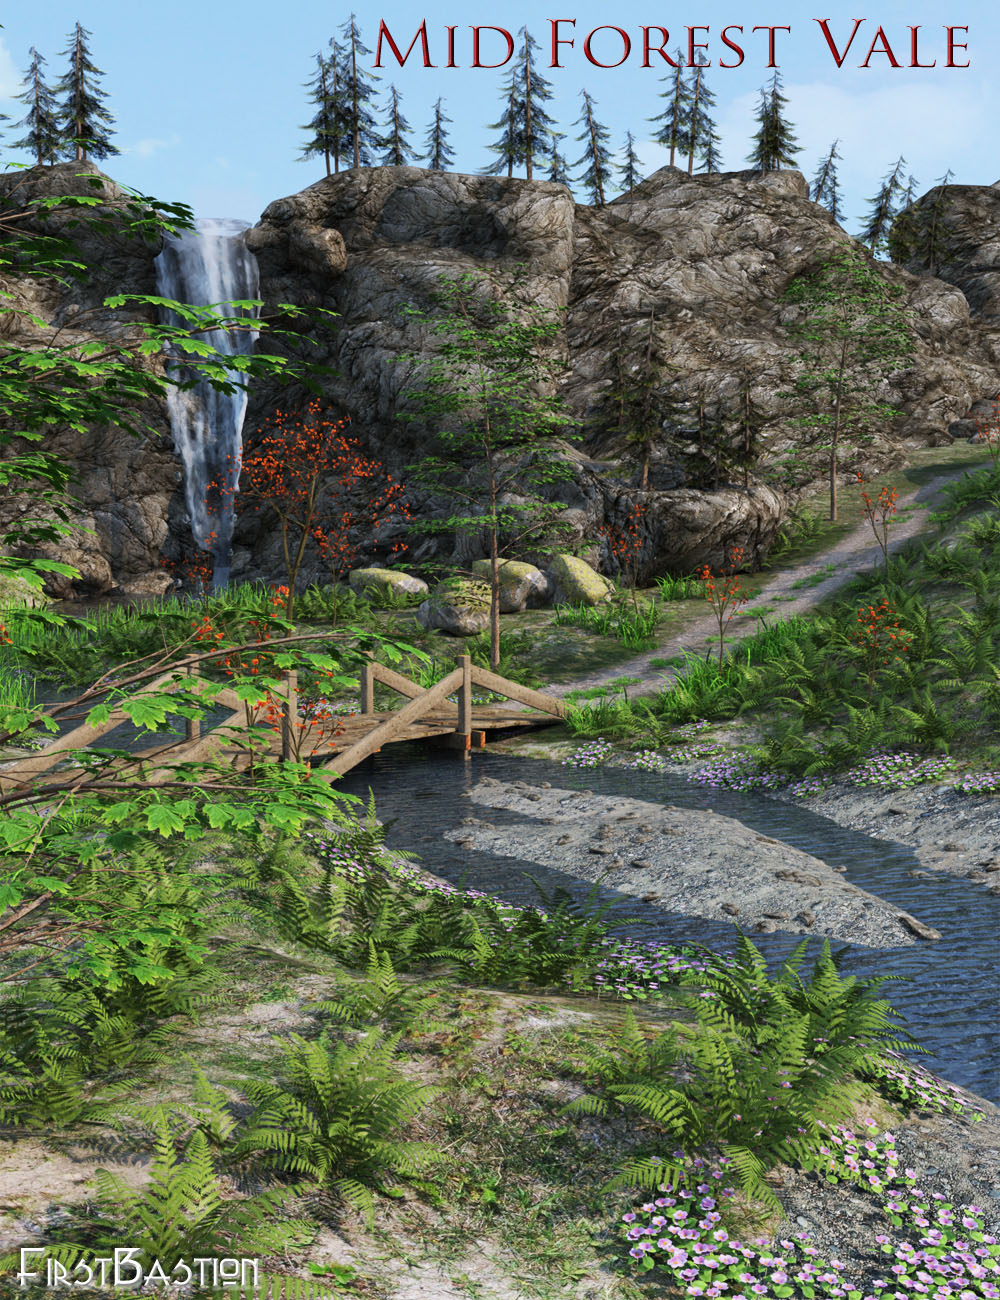 1stBastions Mid Forest Vale by: FirstBastion, 3D Models by Daz 3D